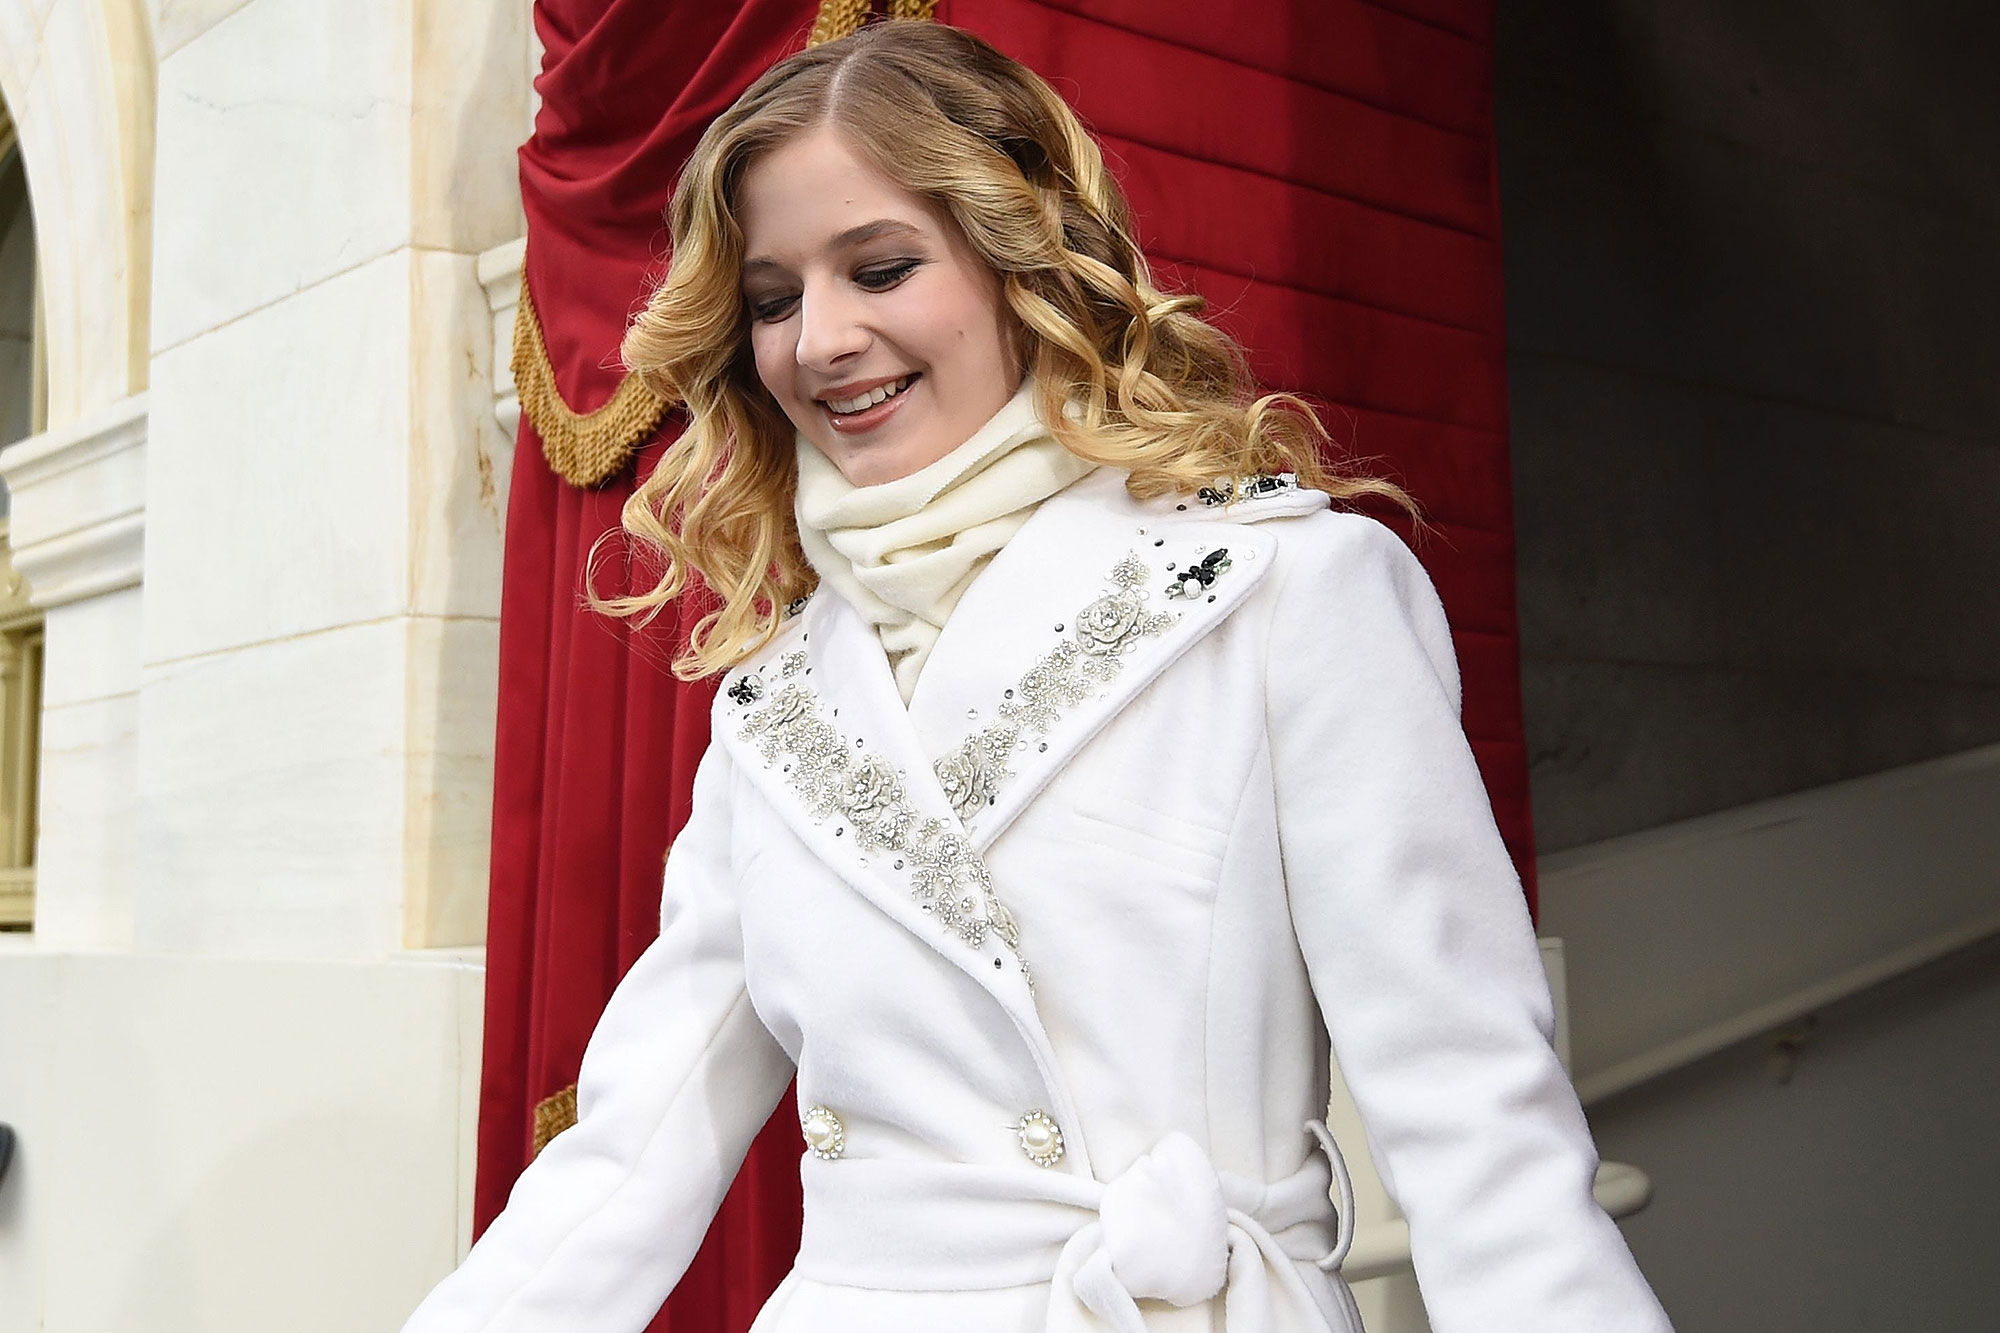 Singer Jackie Evancho arrives for the Presidential Inauguration of Donald Trump at the US Capitol in Washington, DC, January 20, 2017. / AFP / POOL / SAUL LOEB (Photo credit should read SAUL LOEB/AFP/Getty Images)